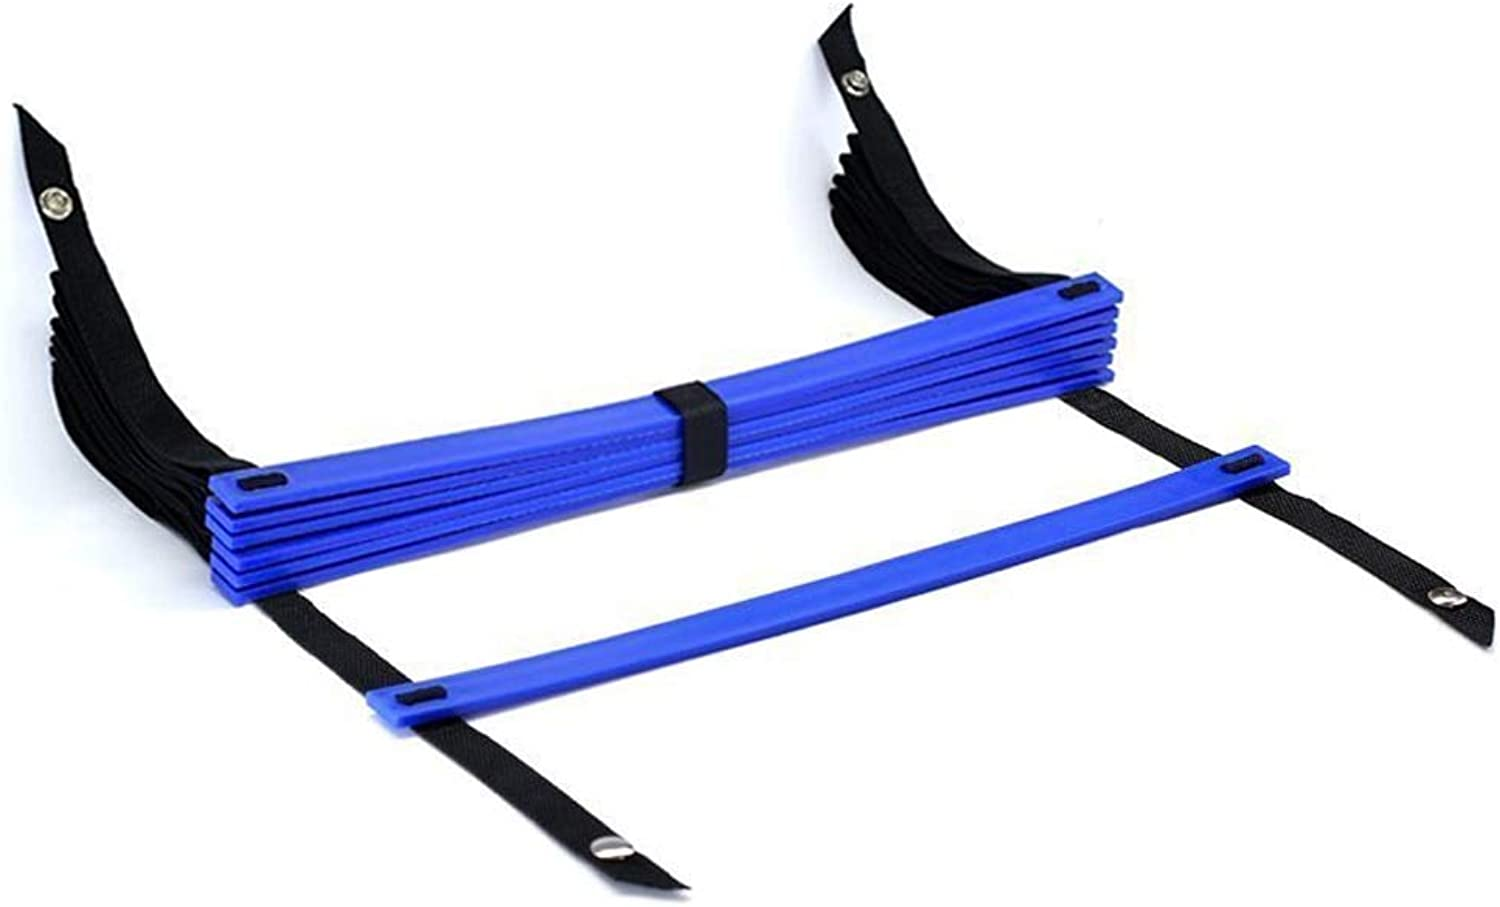 10 Feet Agility Ladder Soccer Training Quick 7 Flat Rungblueee